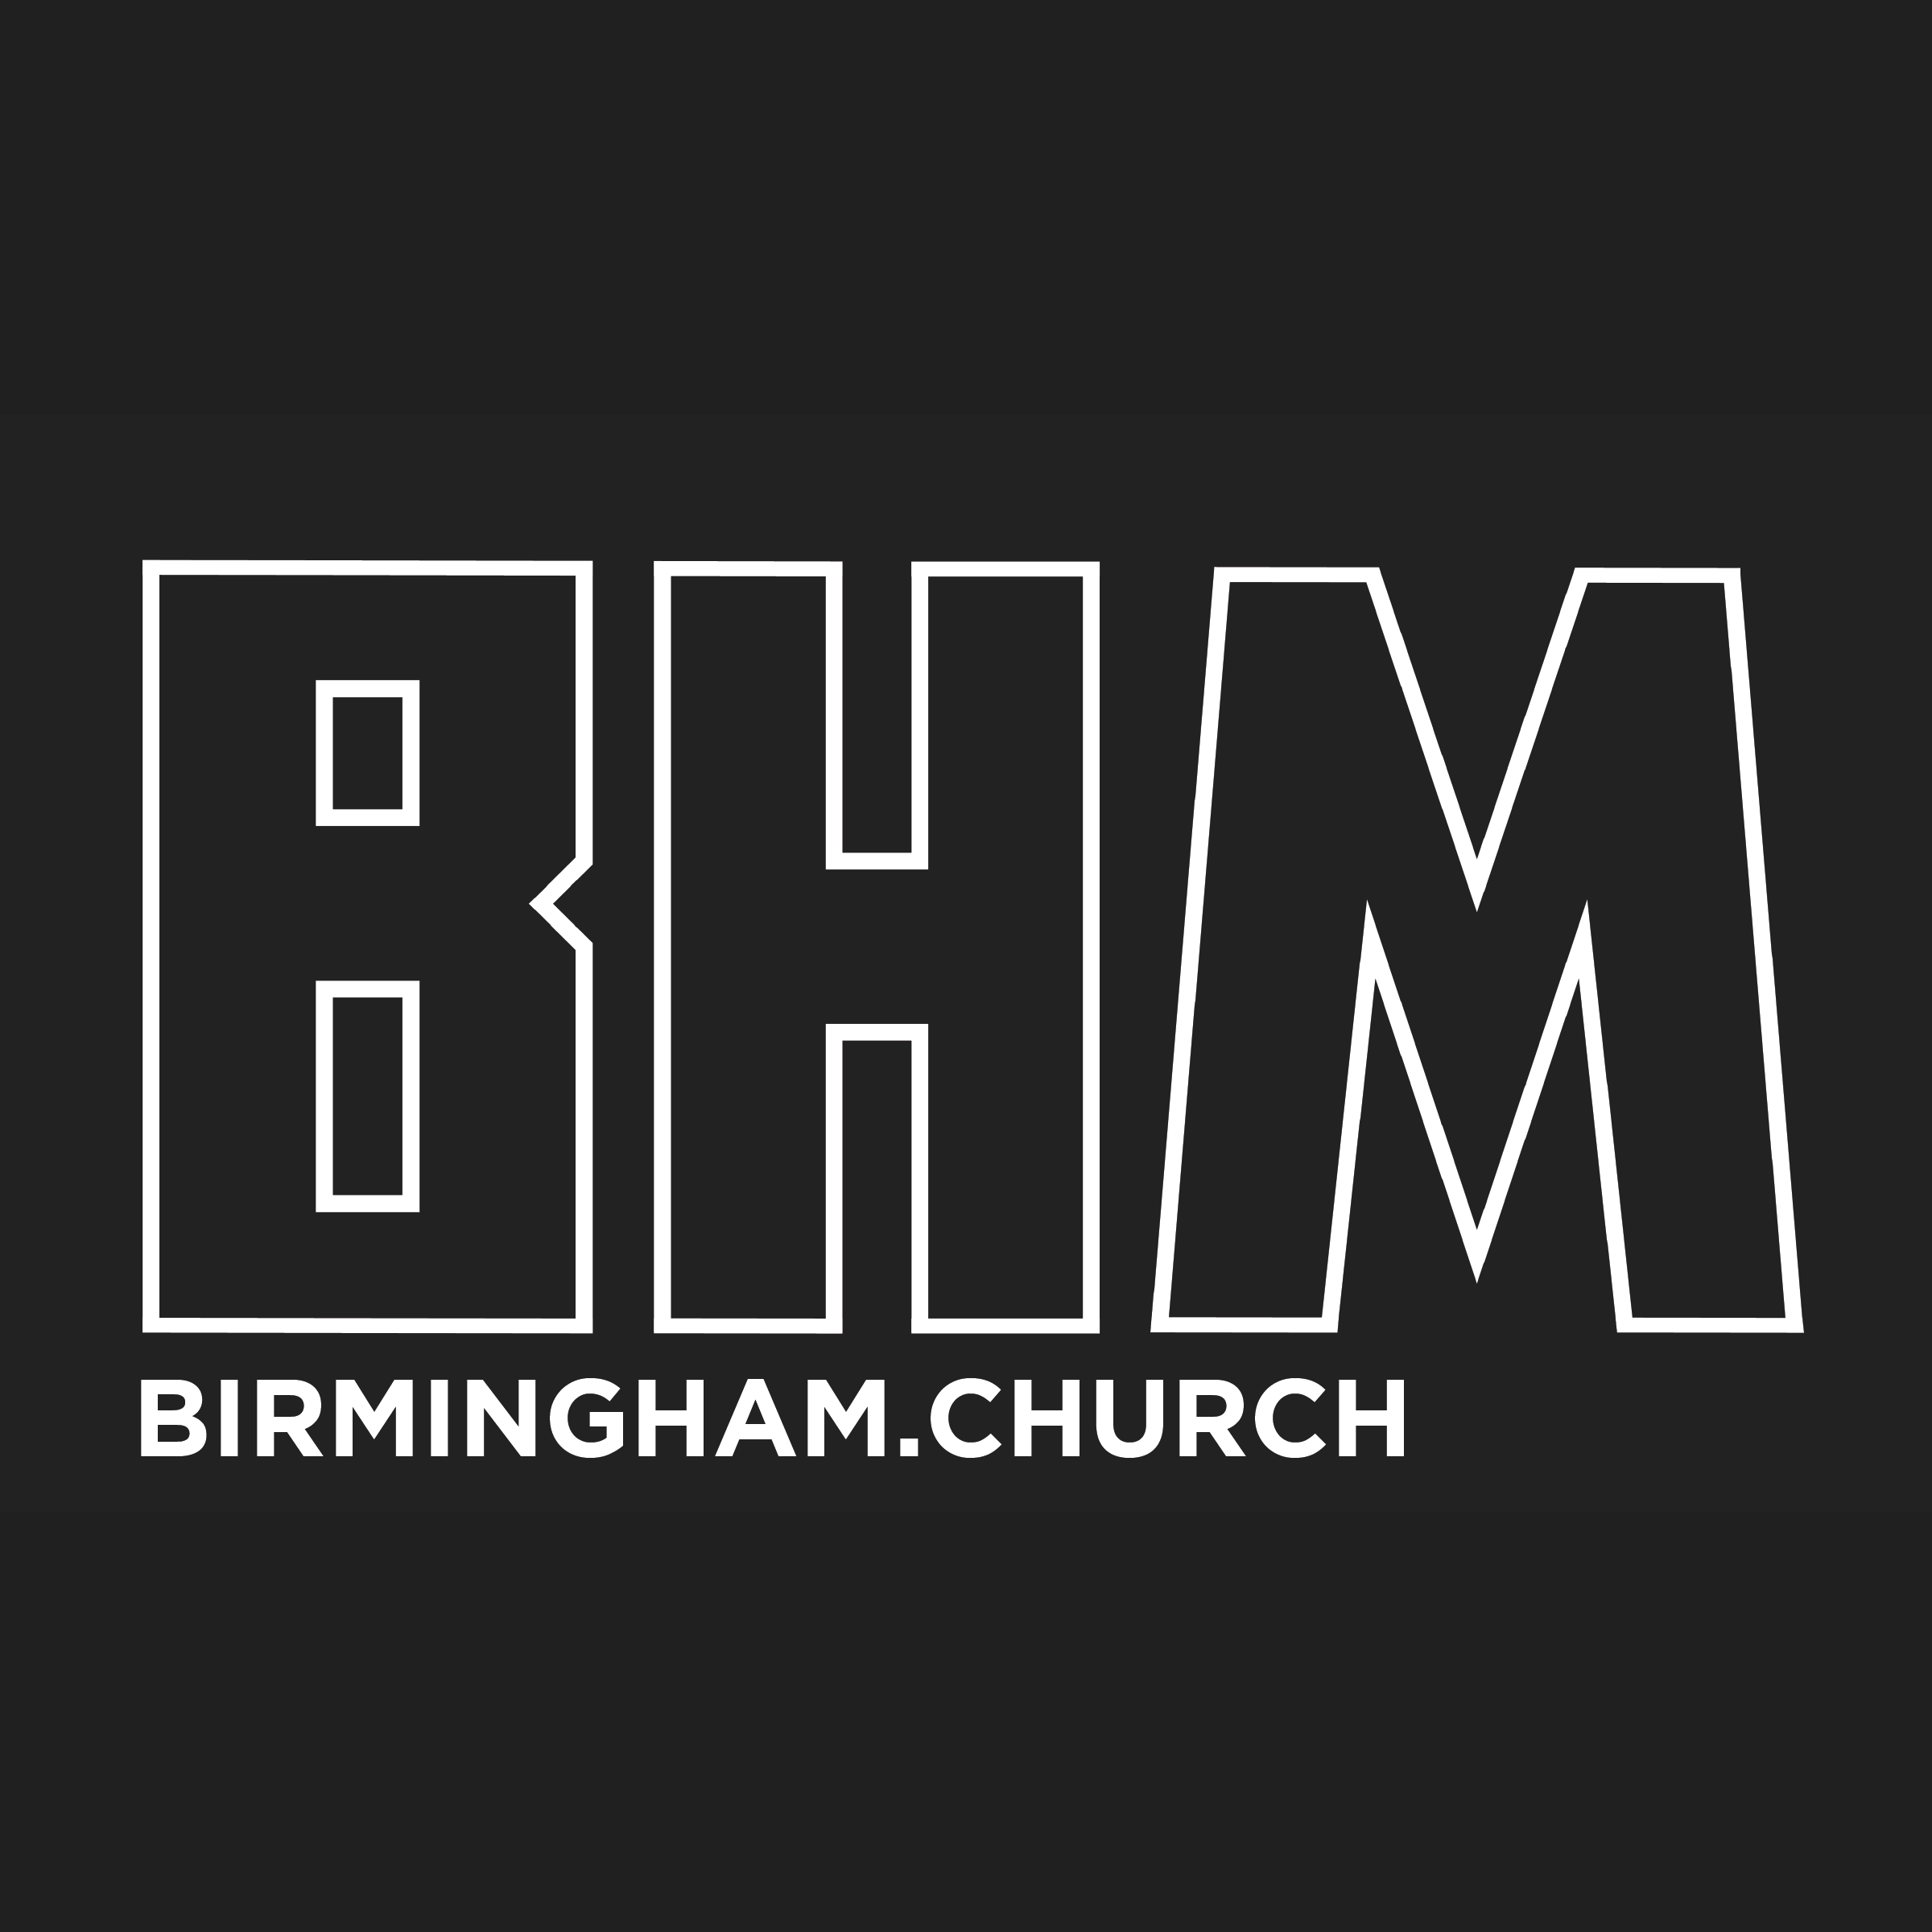 Birmingham Church Social Media Profile Pic-01.png